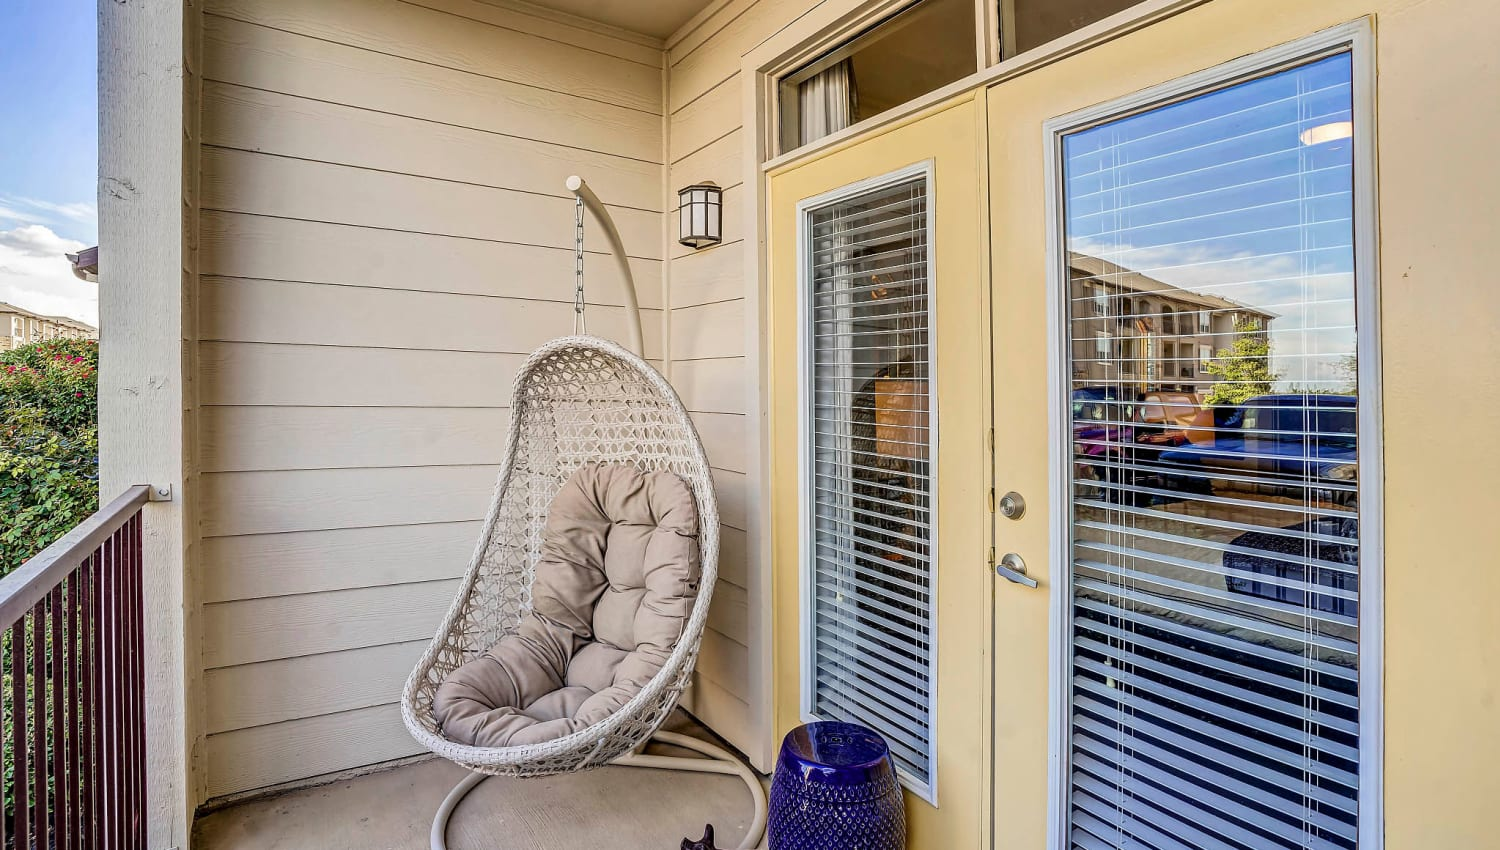 Private balcony outside a model home at Sundance Creek in Midland, Texas